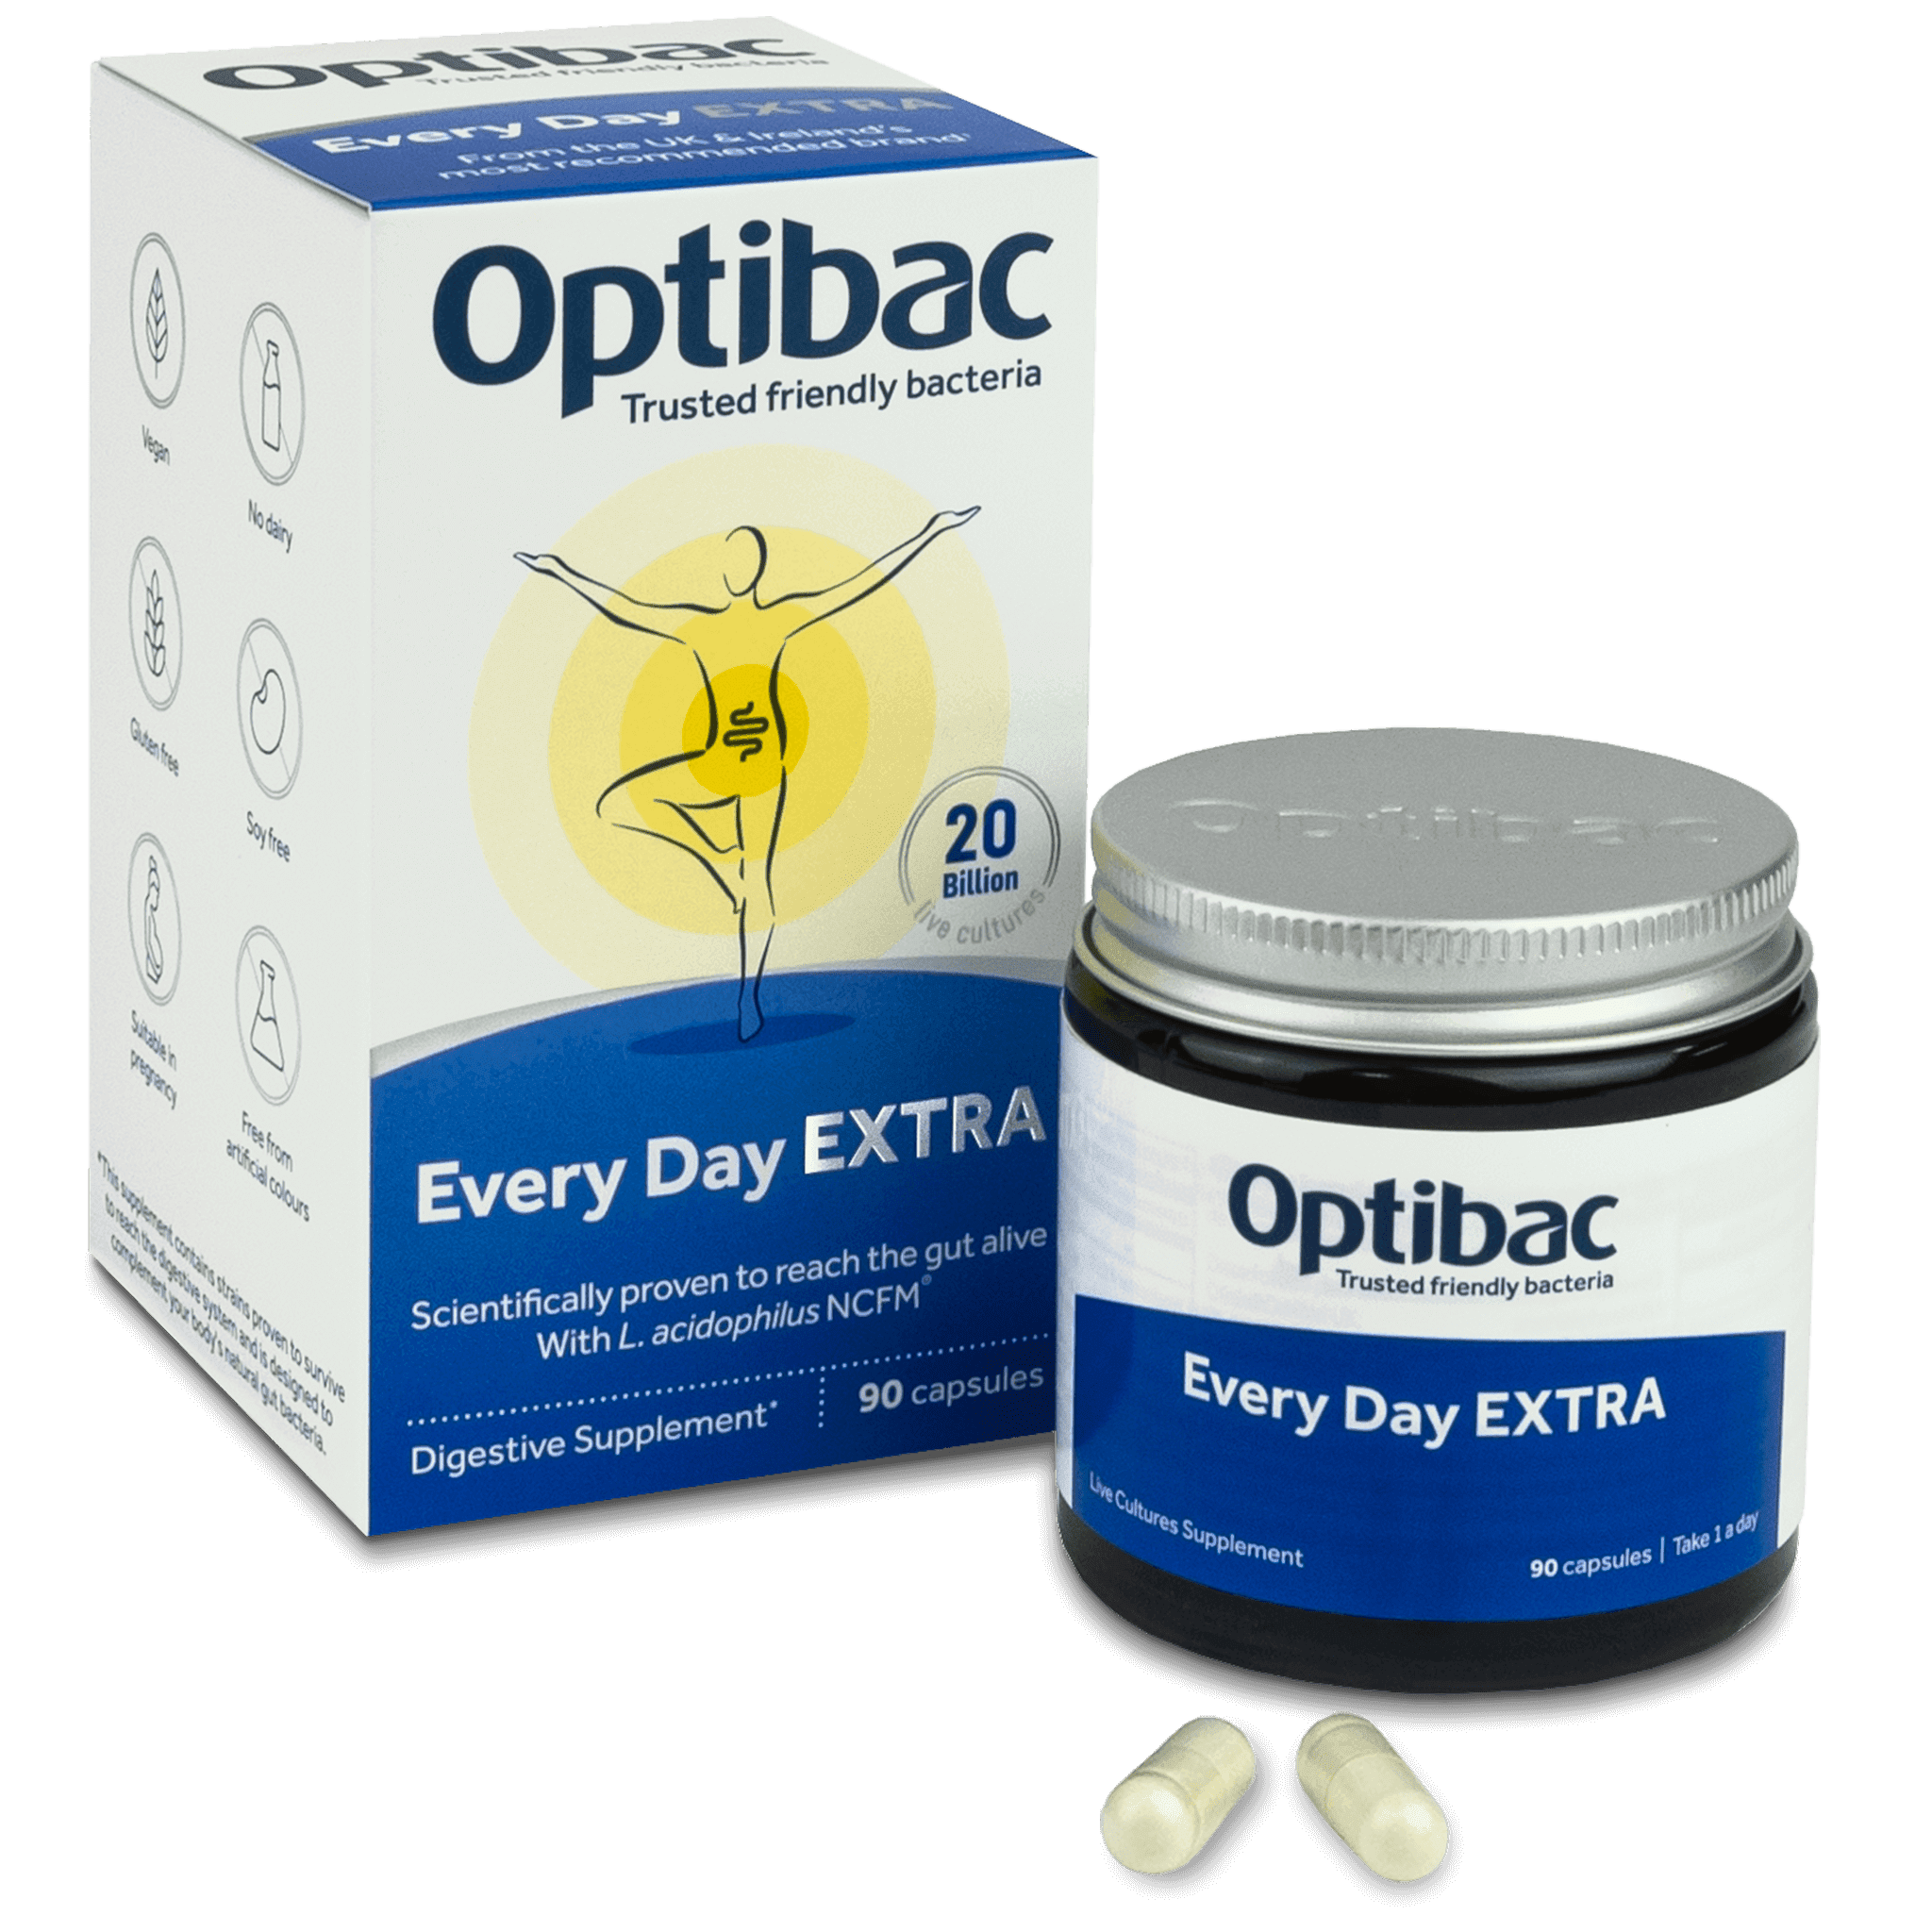 Optibac Probiotics Every Day EXTRA (90 capsules) pack contents